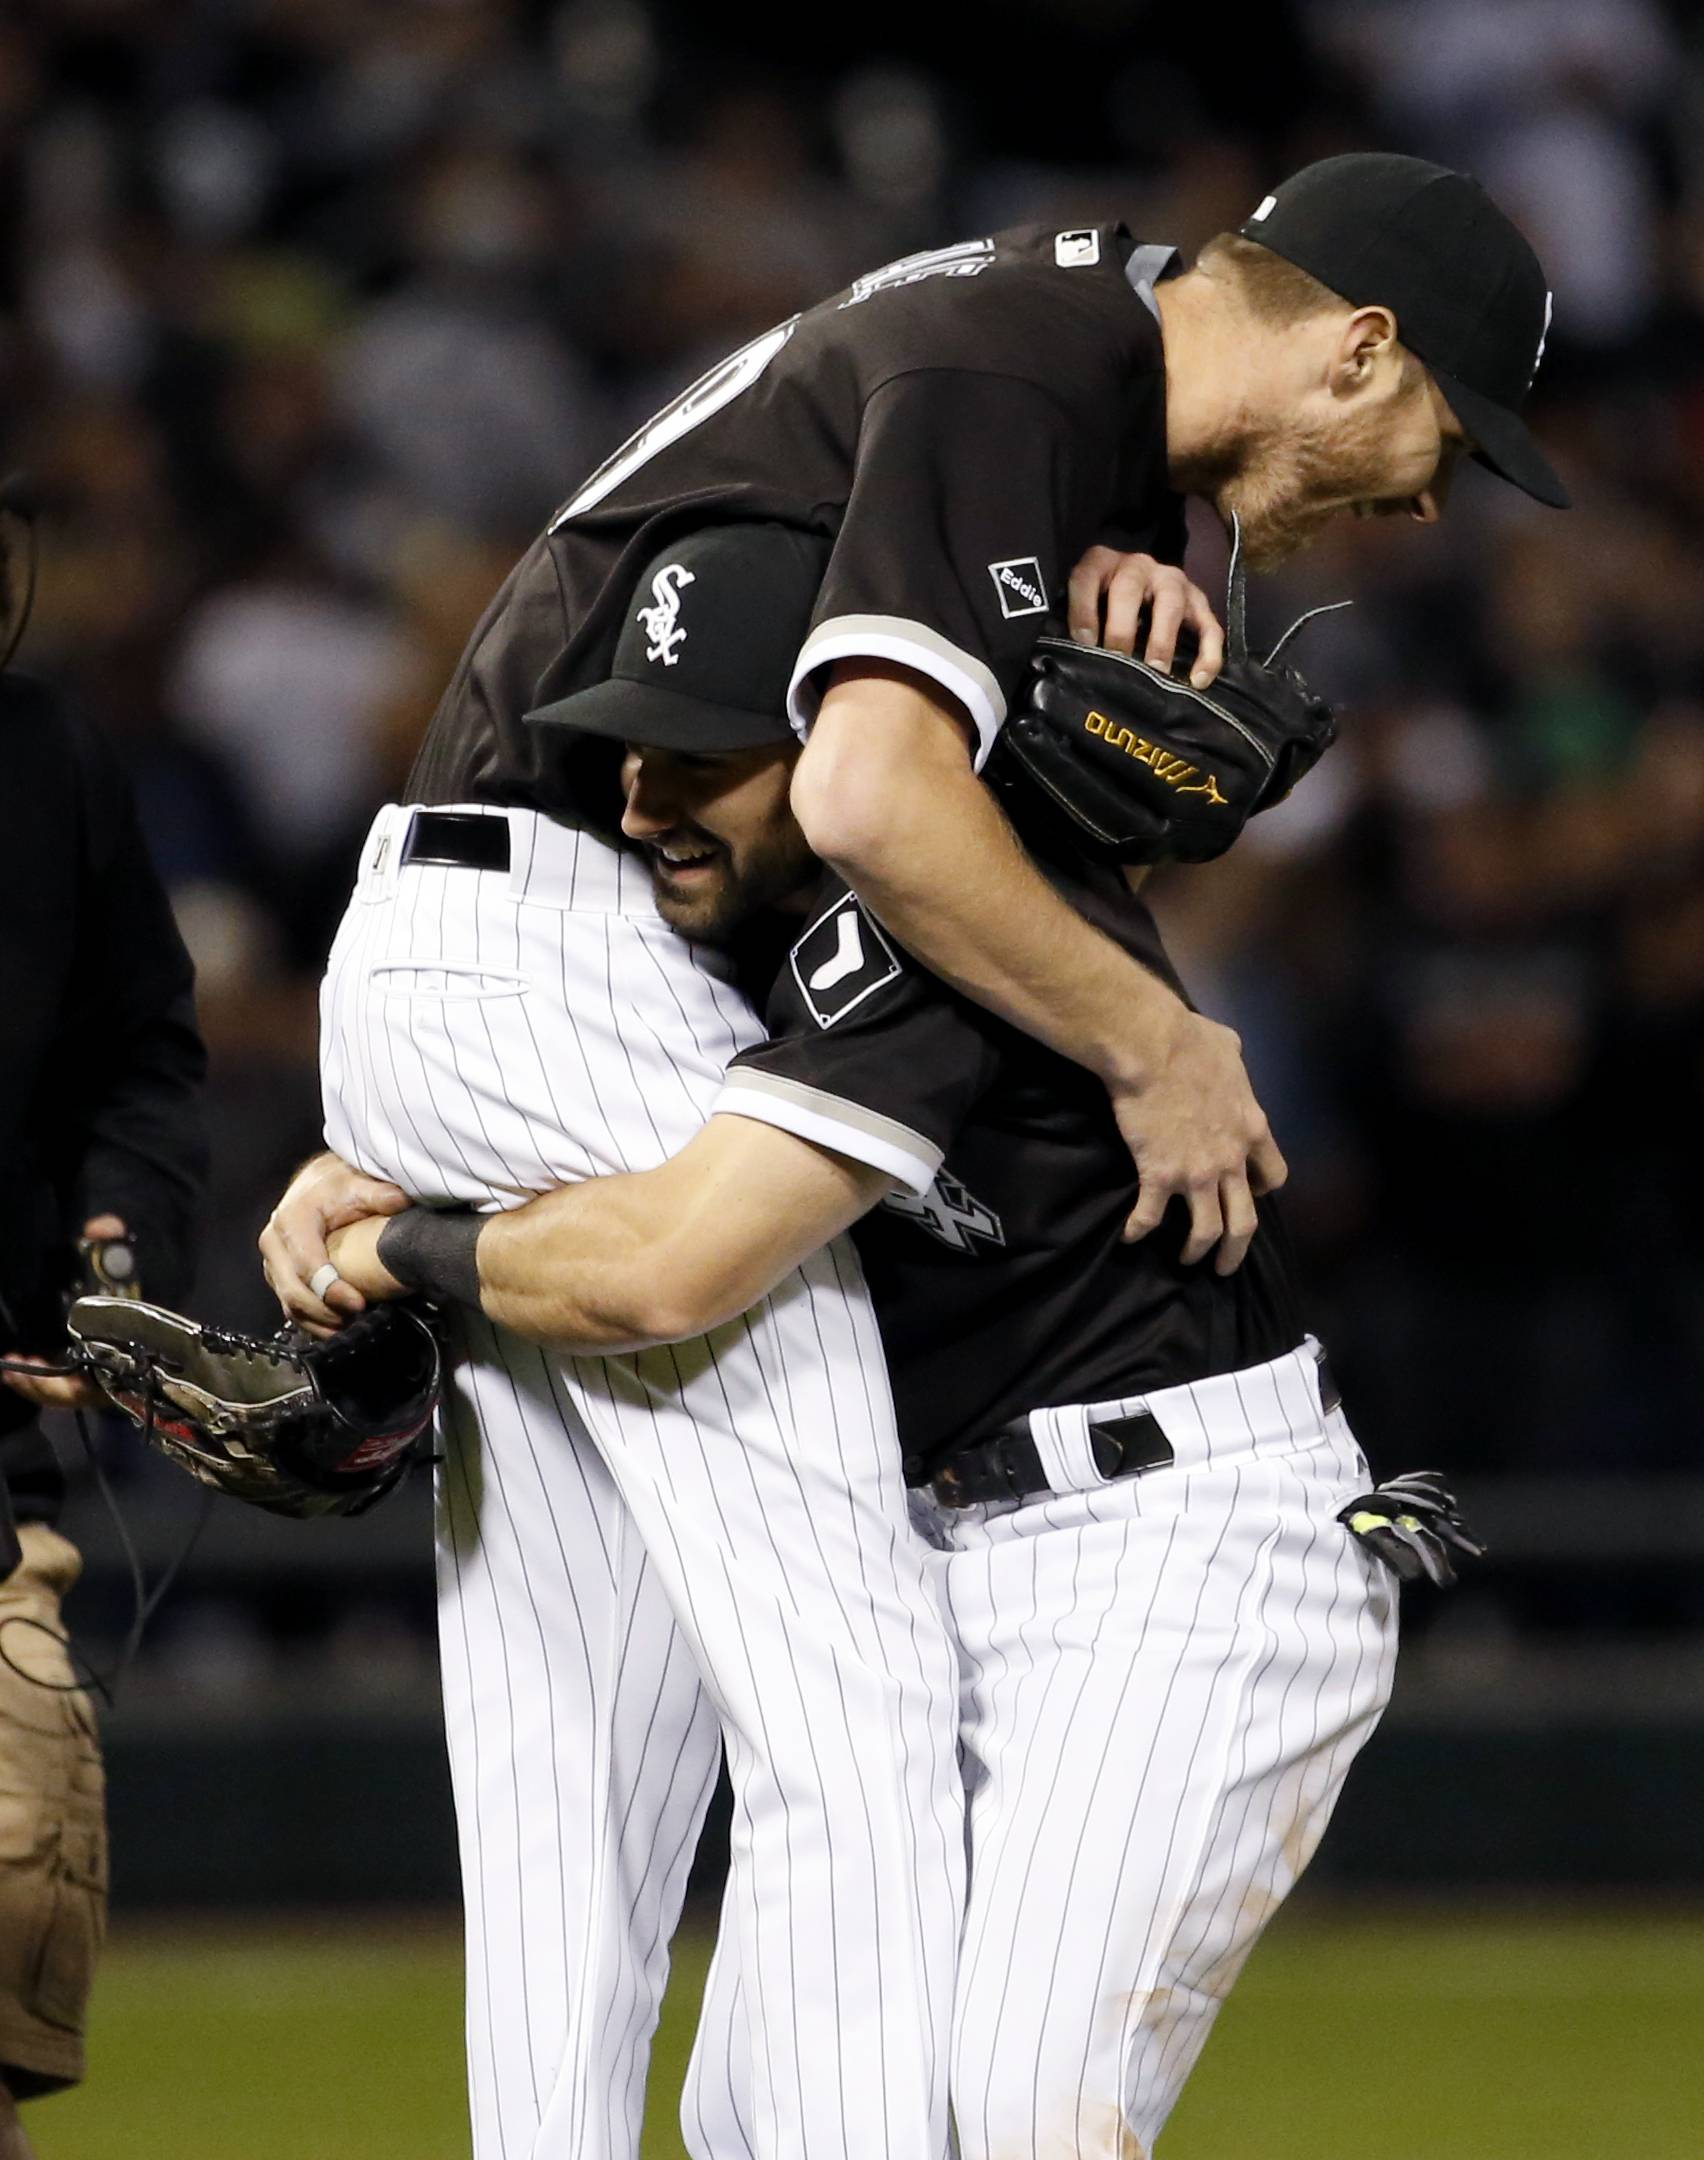 White Sox starter Chris Sale, left, celebrates with Adam Eaton Chris Sale pitched his second straight complete game Thursday night, lifting the Chicago White Sox to a 2-1 win over the Astros. Sale improved his record to 9-0.